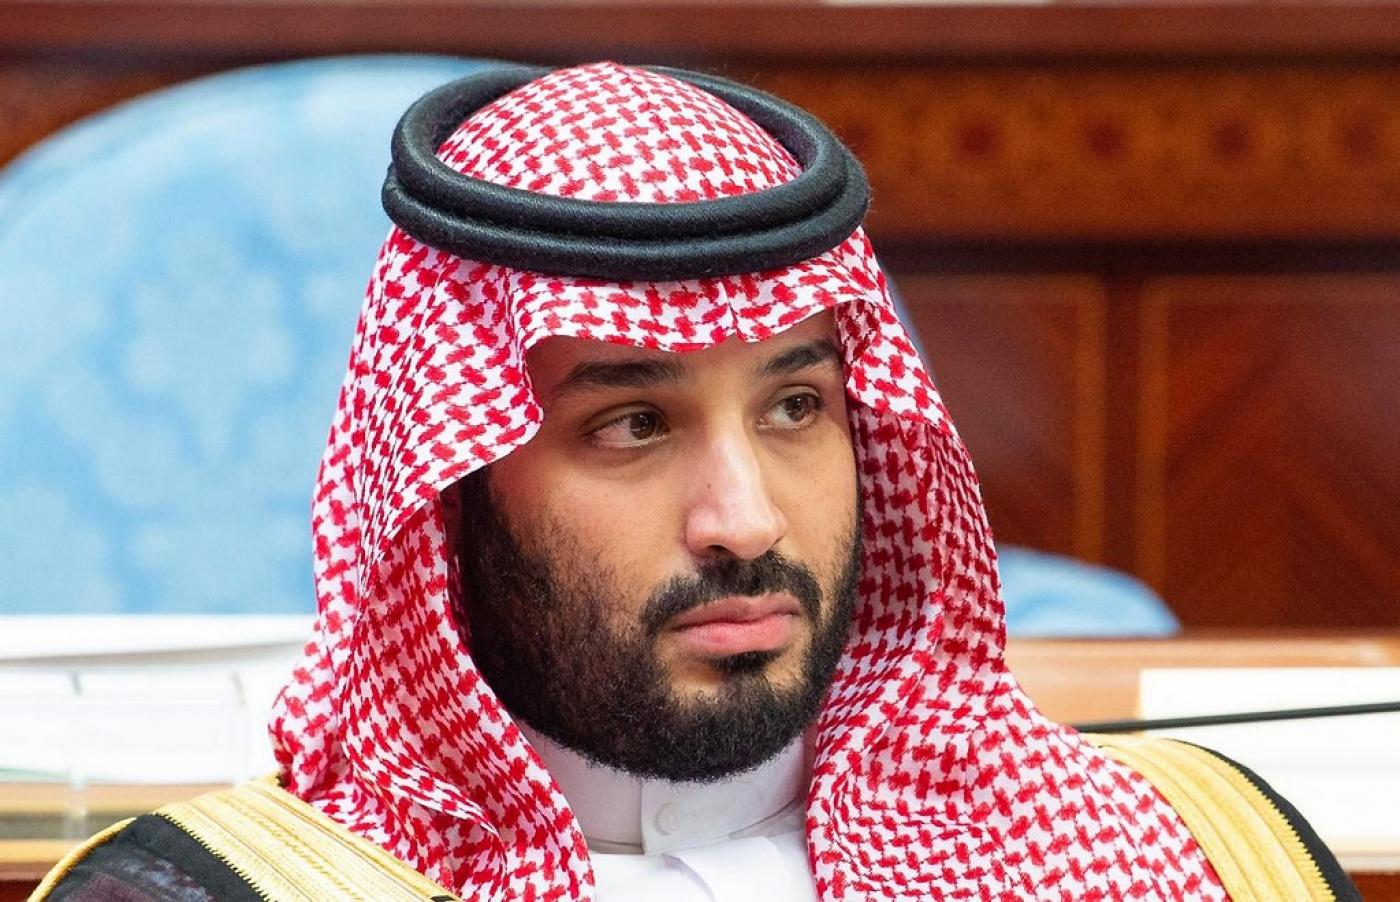 Crown Prince Mohammed bin Salman tried pressuring Saad al-Jabri into returning to Saudi Arabia